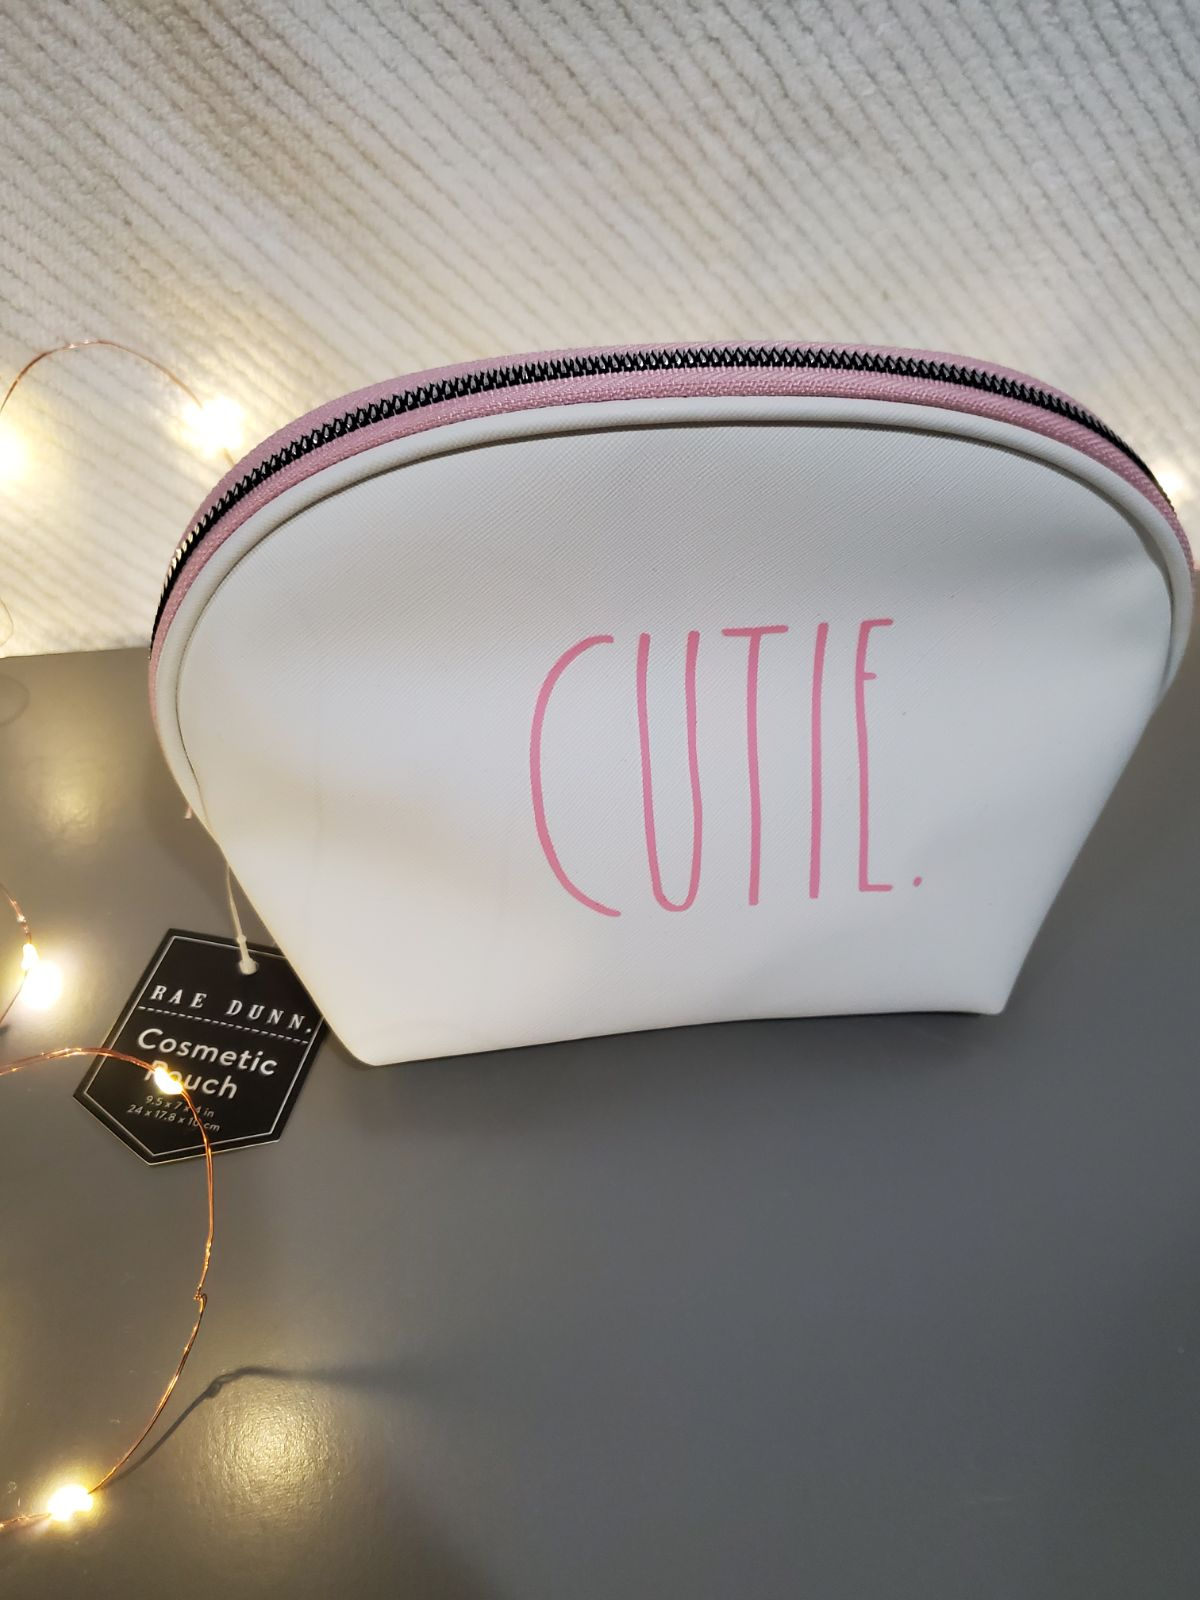 Rae Dunn Cosmetic Pouch Cutie Pink